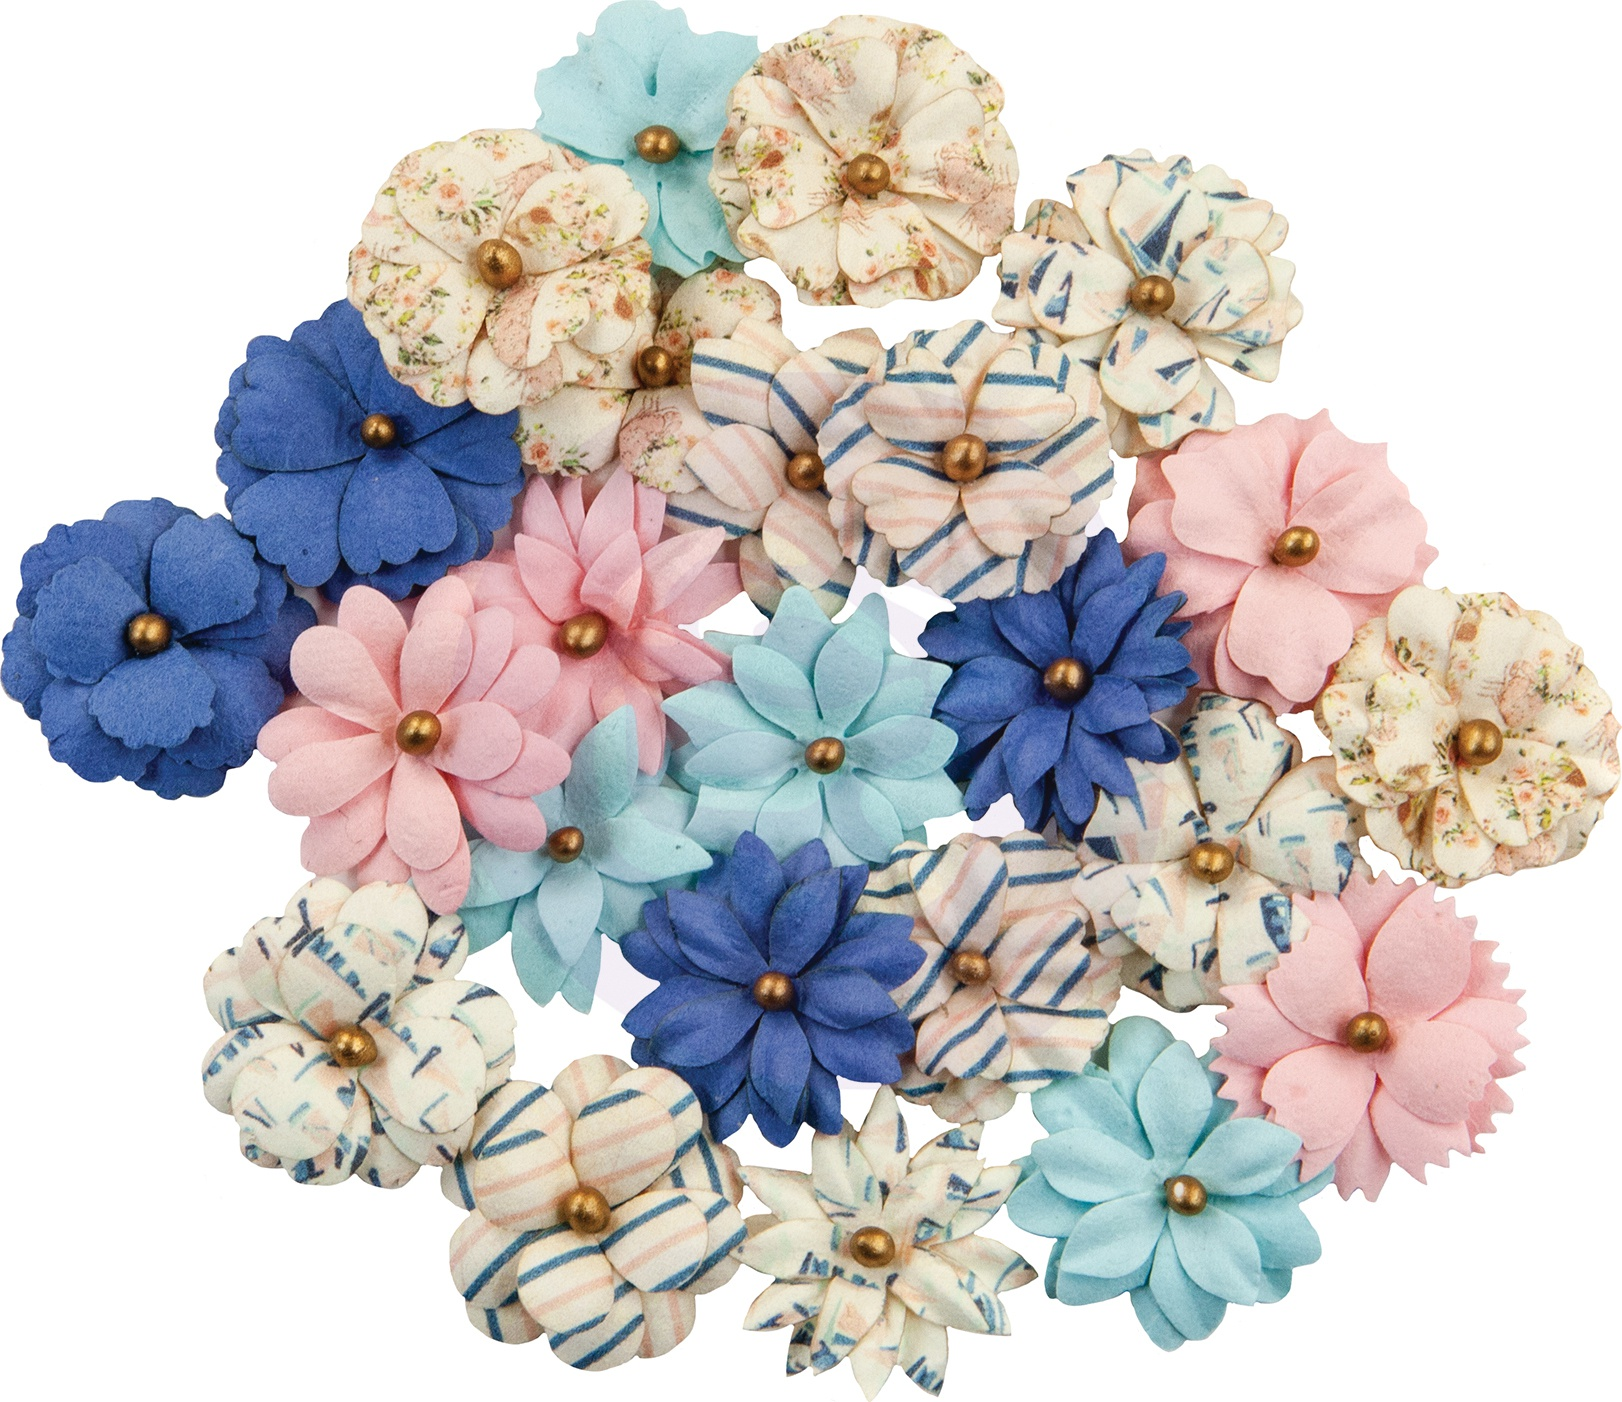 Prima - Mulberry Paper Flowers  - Moon Bay/Golden Coast, 24/Pkg